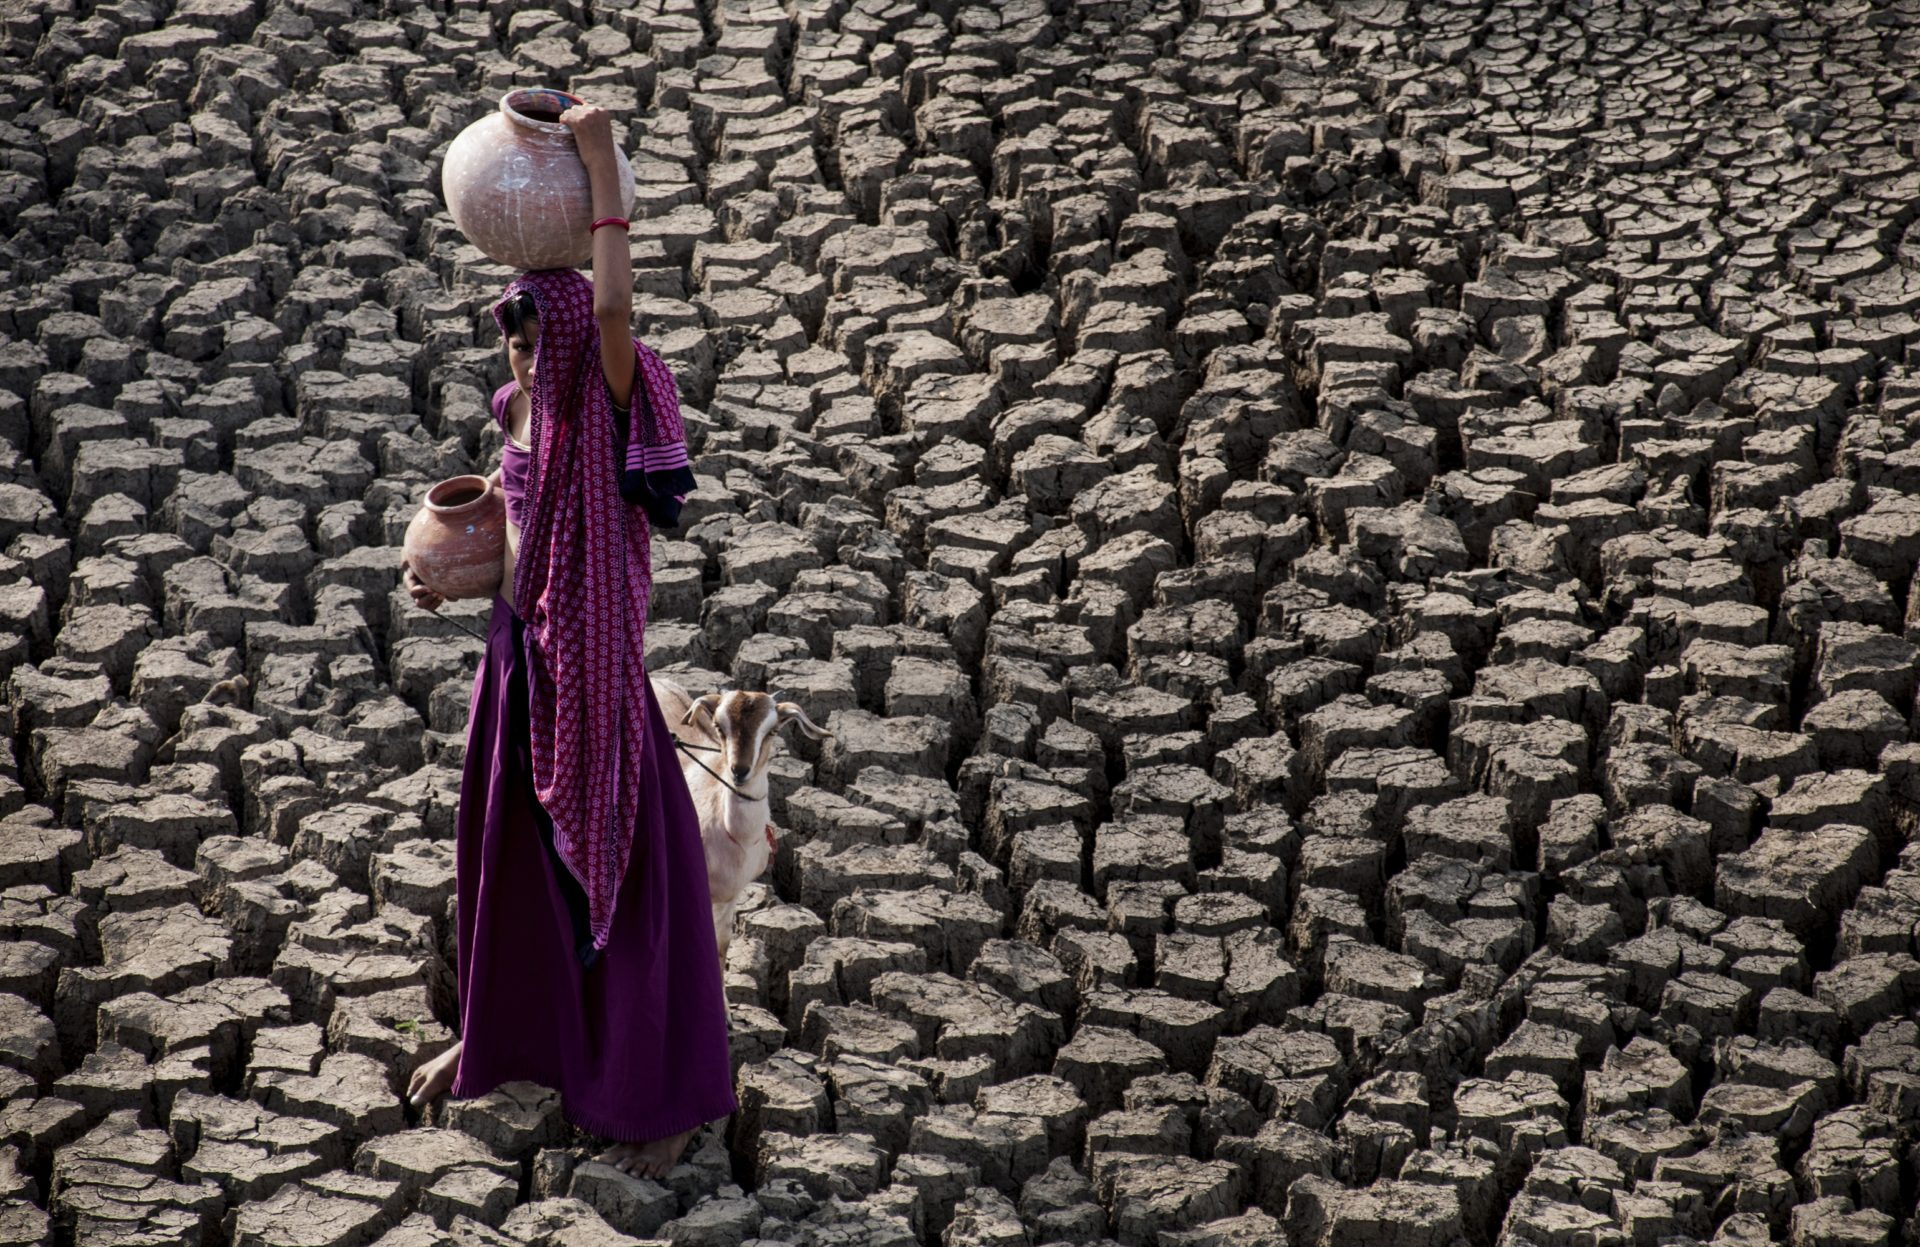 young girl carries water in her head and on her head in a water scarce environment